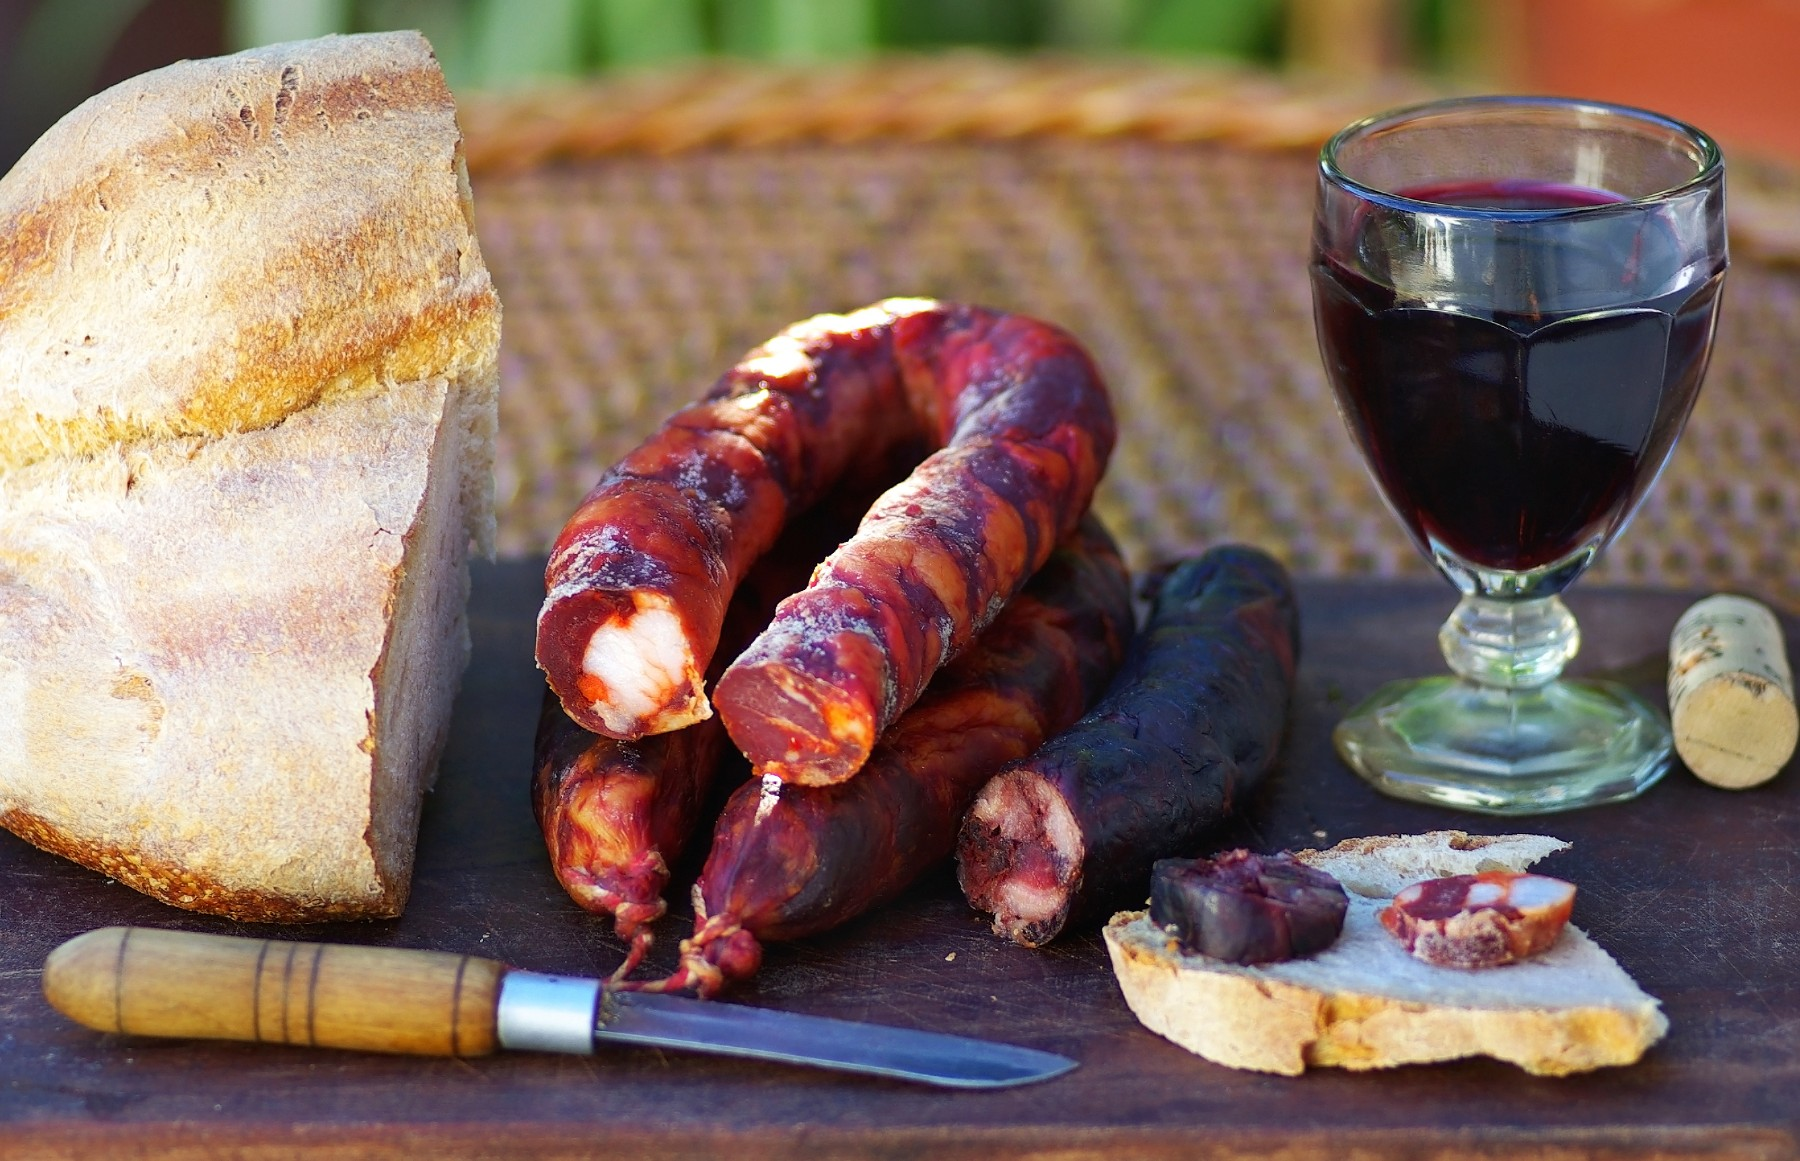 Portuguese cuisine, bread and meat in Portugal